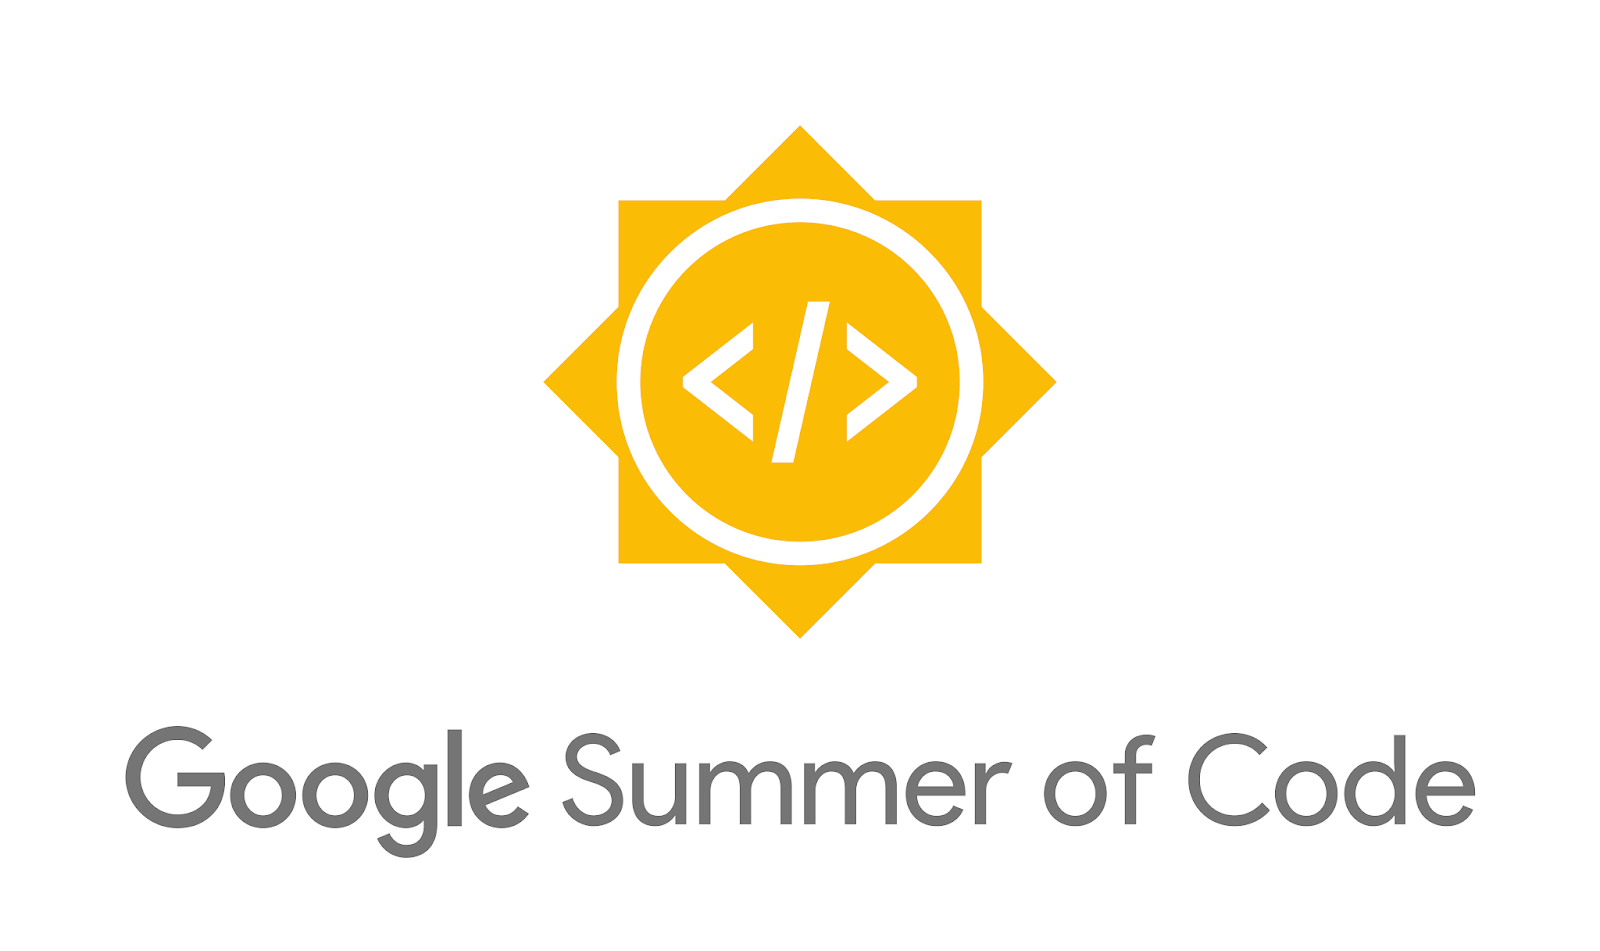 Third time is the charm! And FN-Br has charming ideas for GSoC 2021!